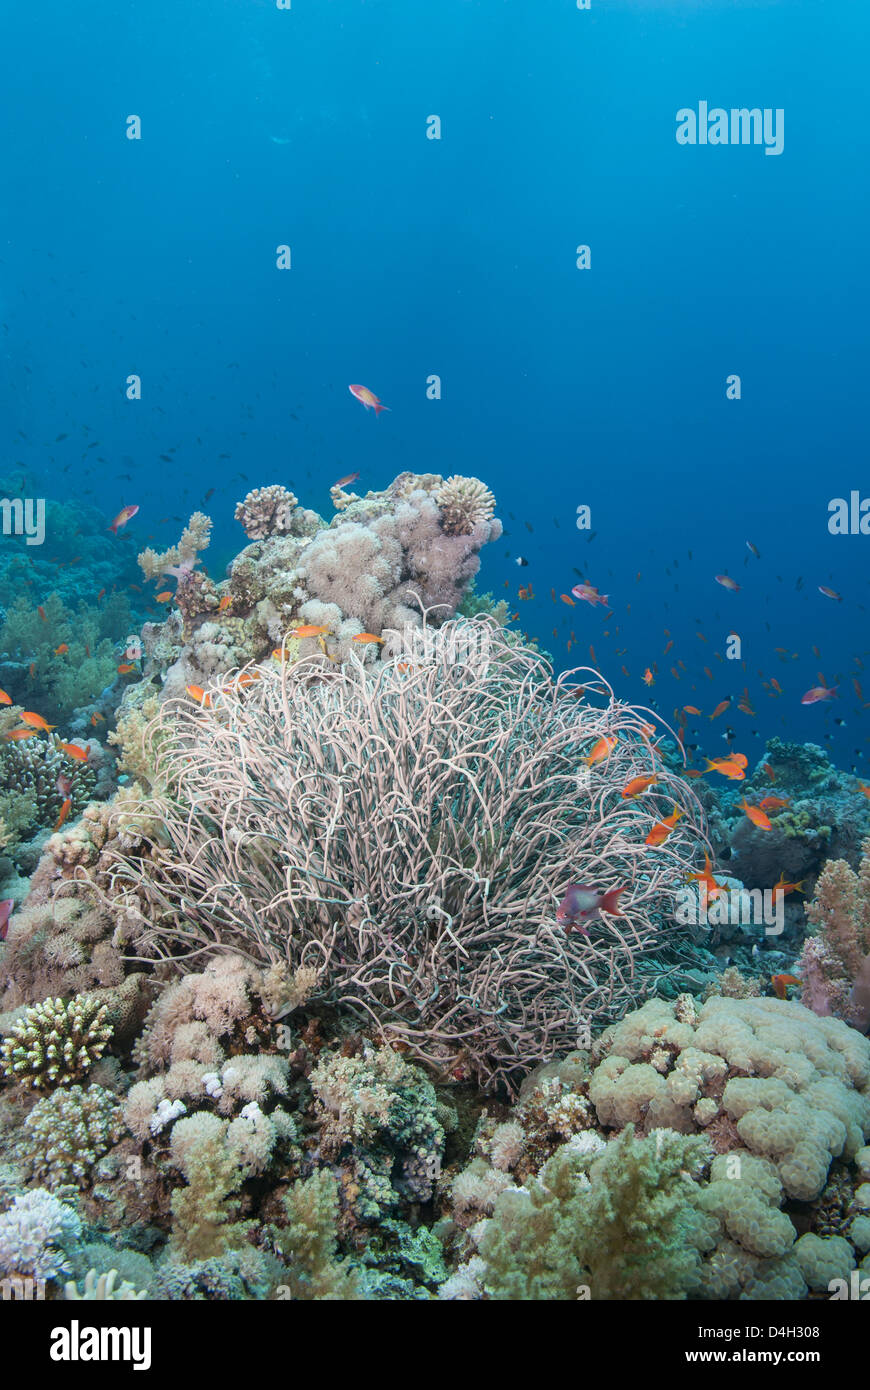 Tropical coral reef with a sea plume, Ras Mohammed National Park, off Sharm el Sheikh, Sinai, Egypt, Red Sea, Egypt - Stock Image